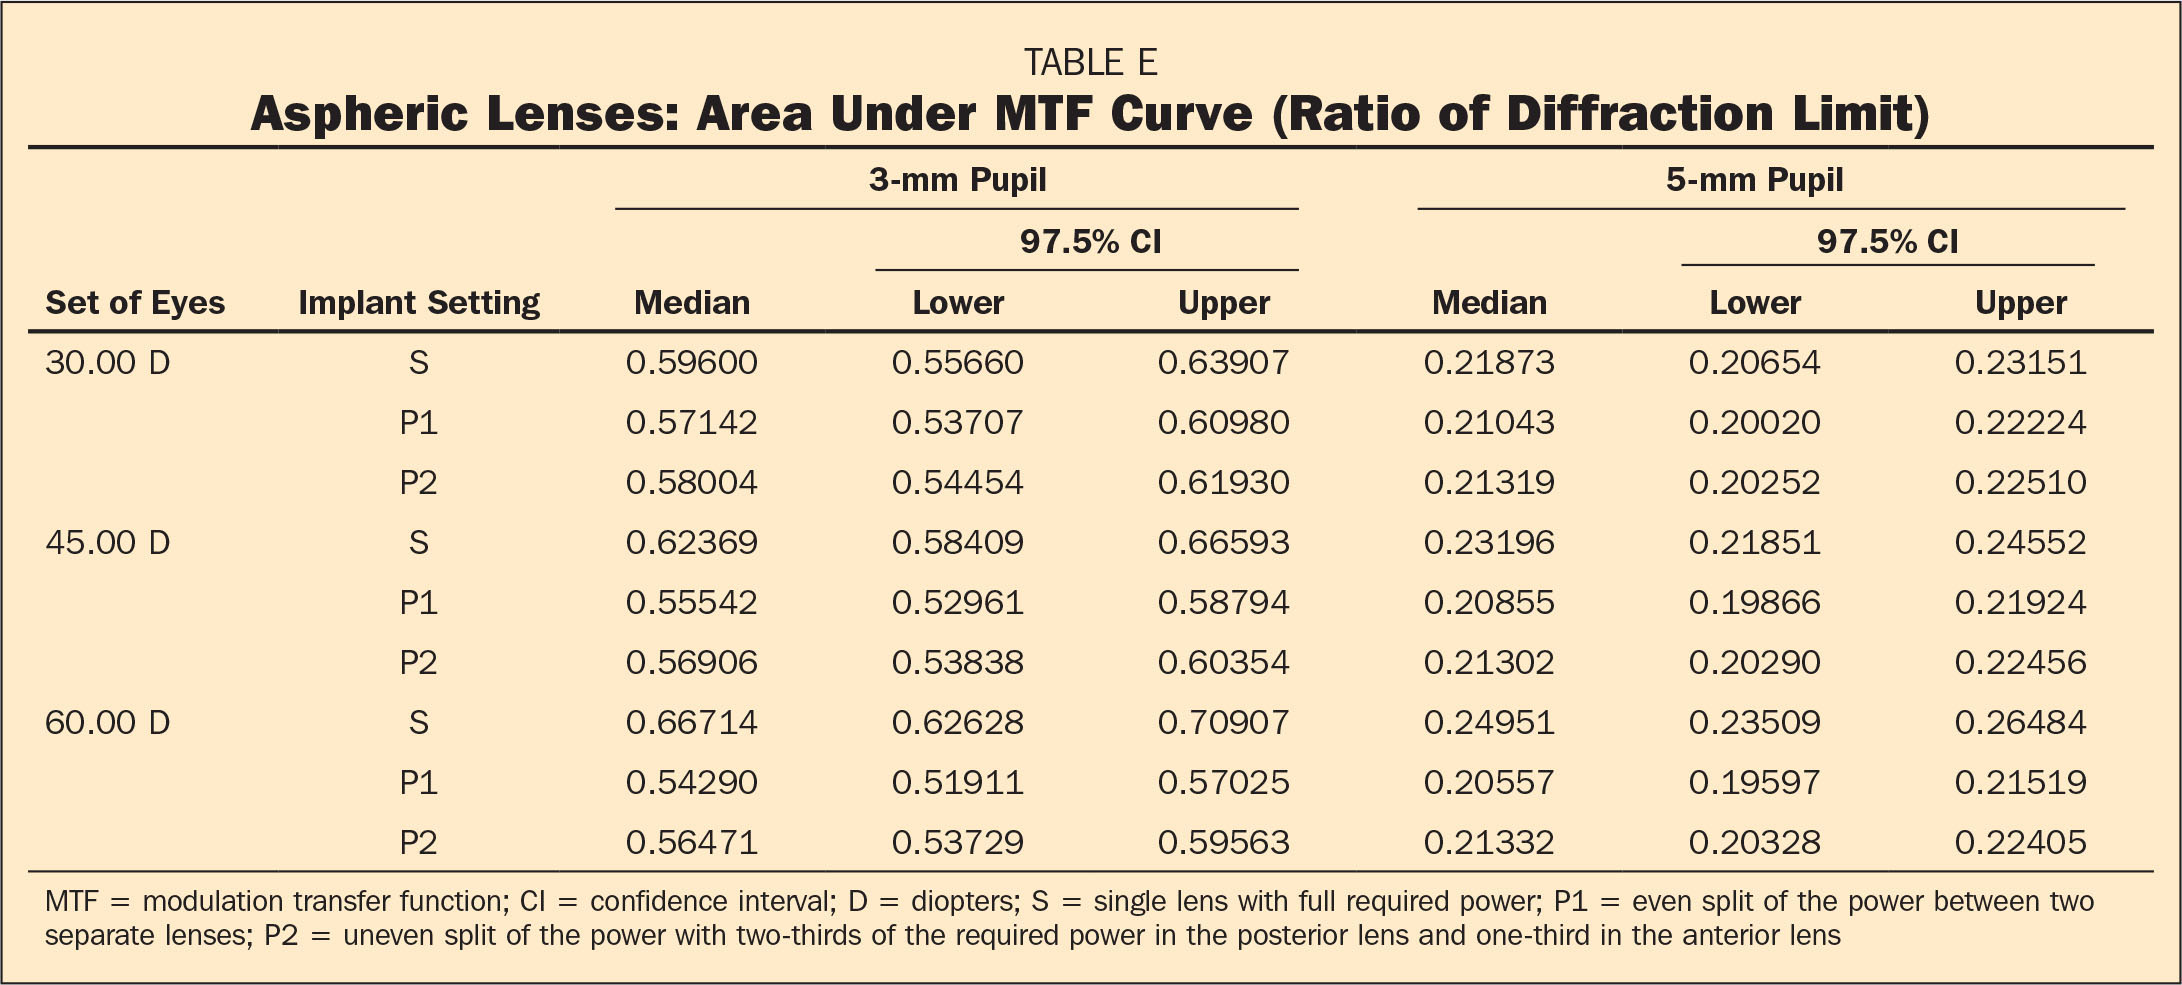 Aspheric Lenses: Area Under MTF Curve (Ratio of Diffraction Limit)